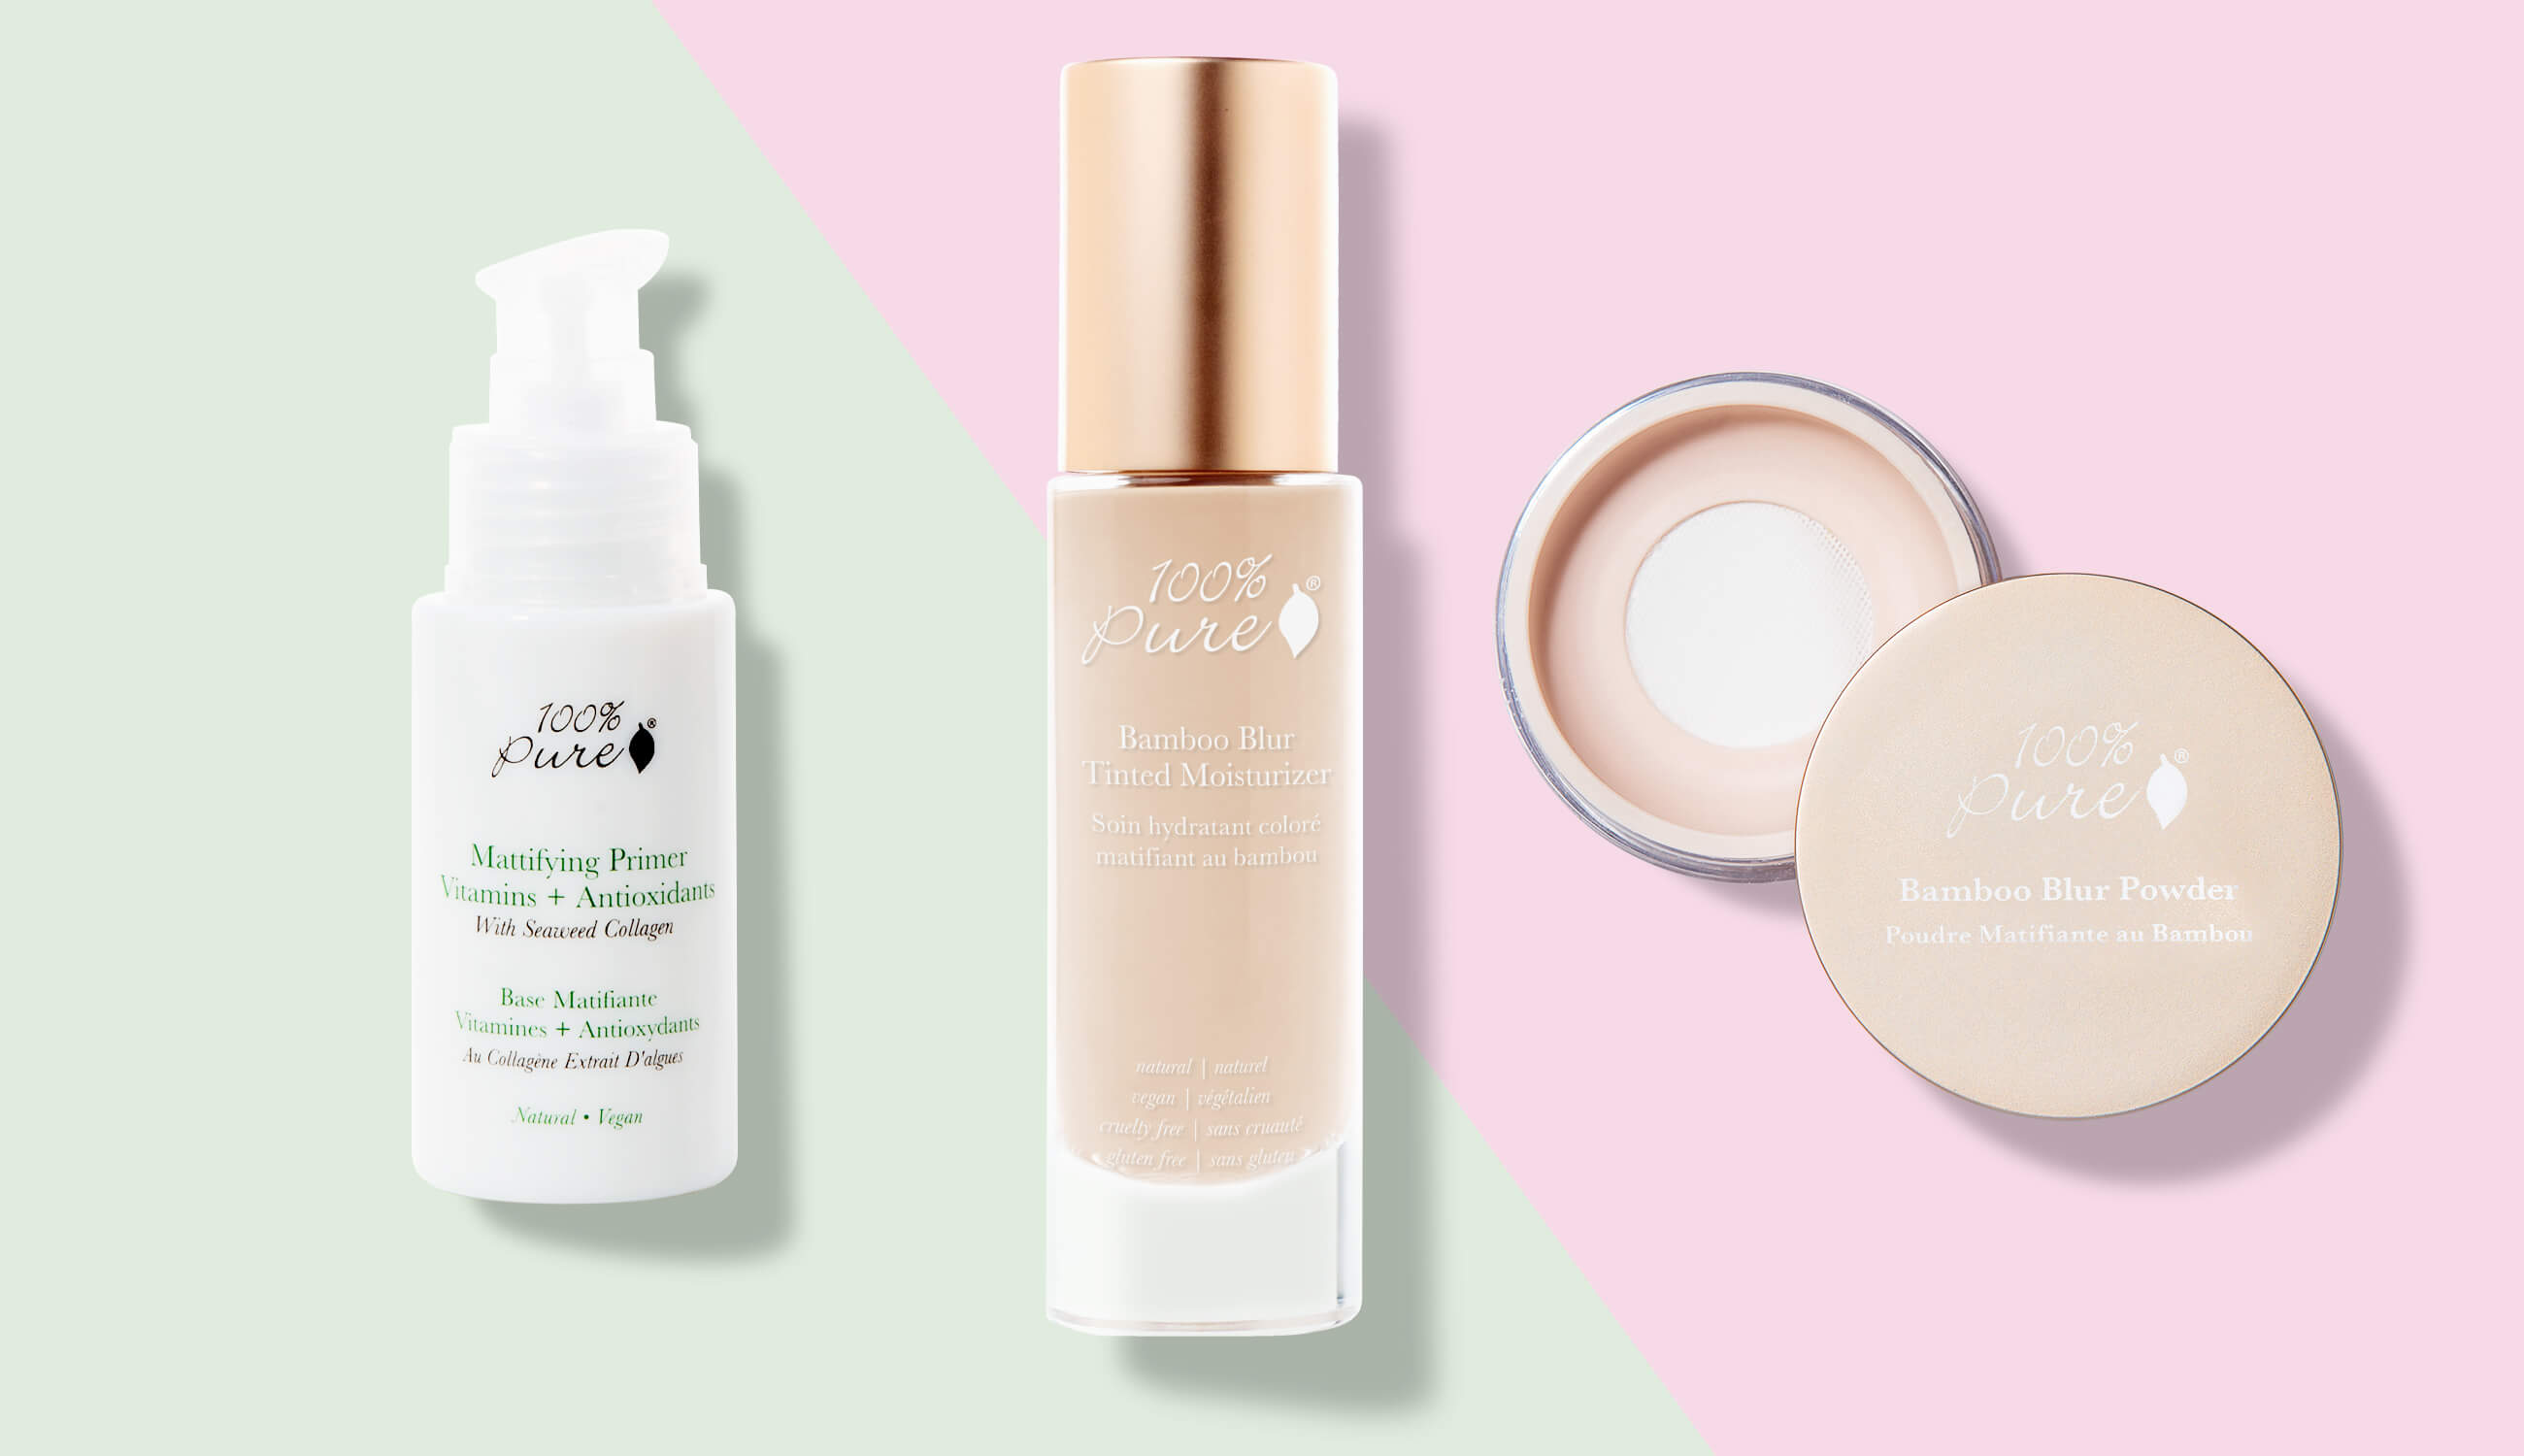 Small pores products